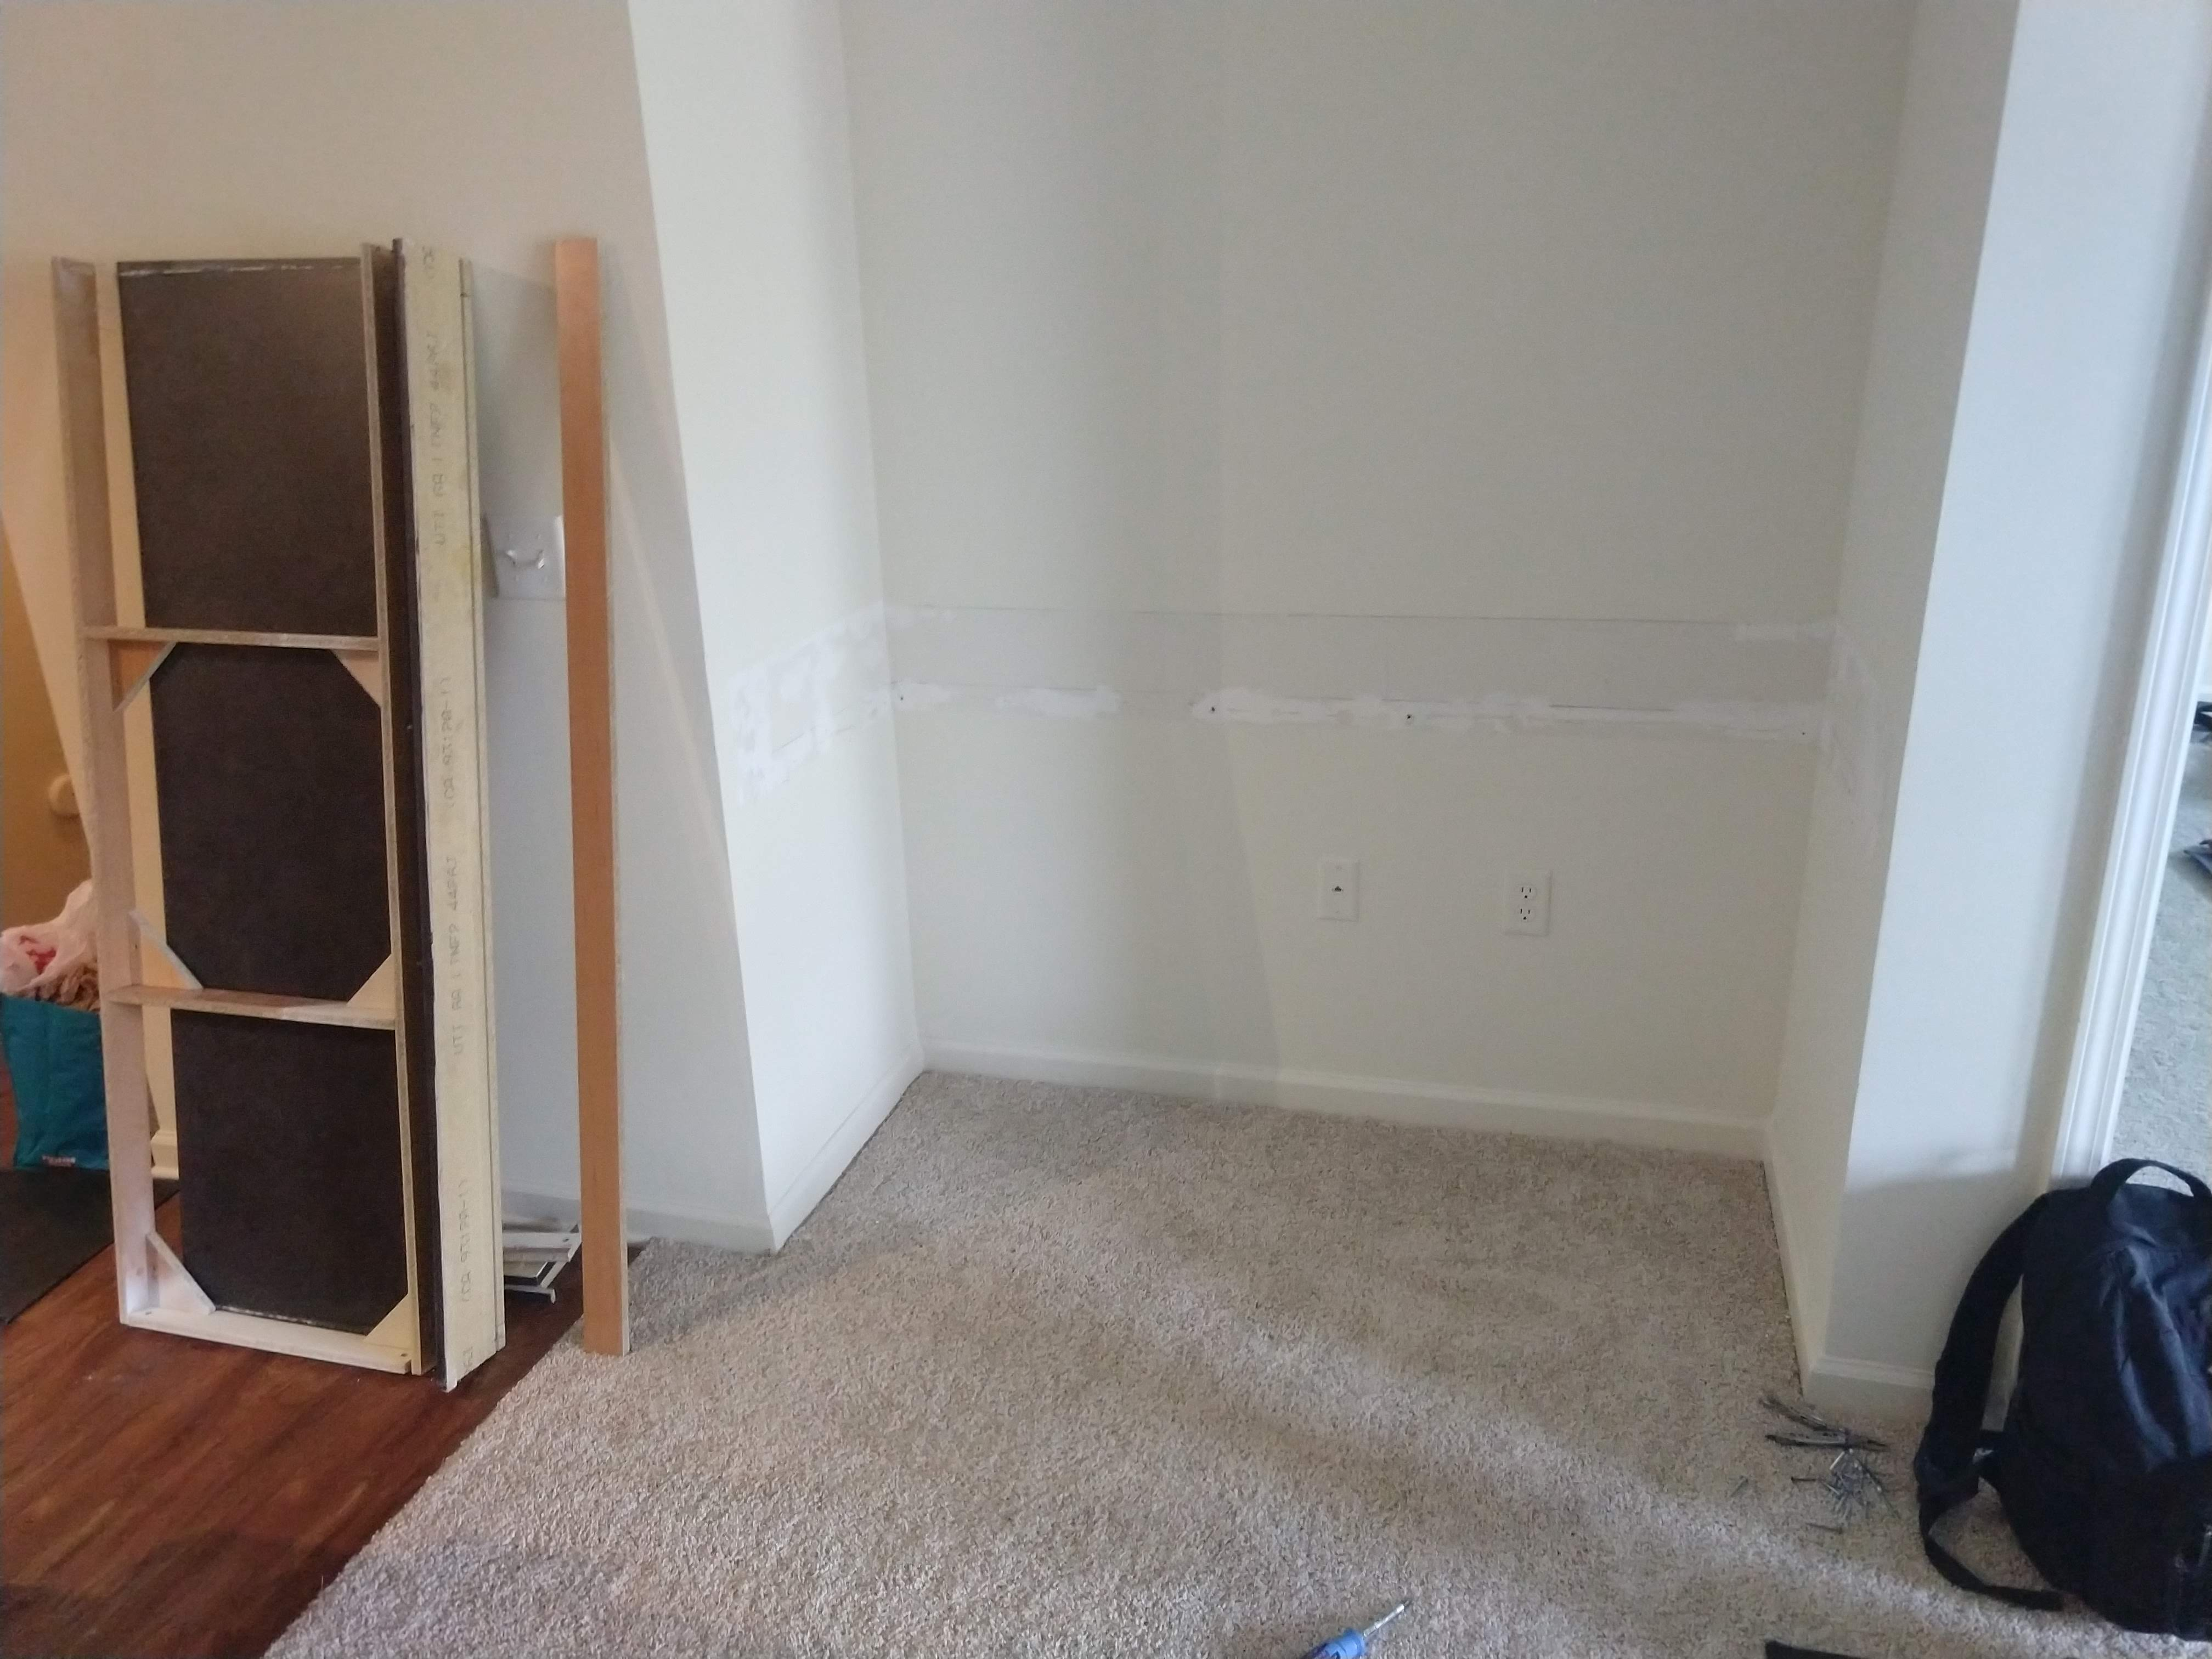 Success! Wall required a good bit of drywall mud & sanding.